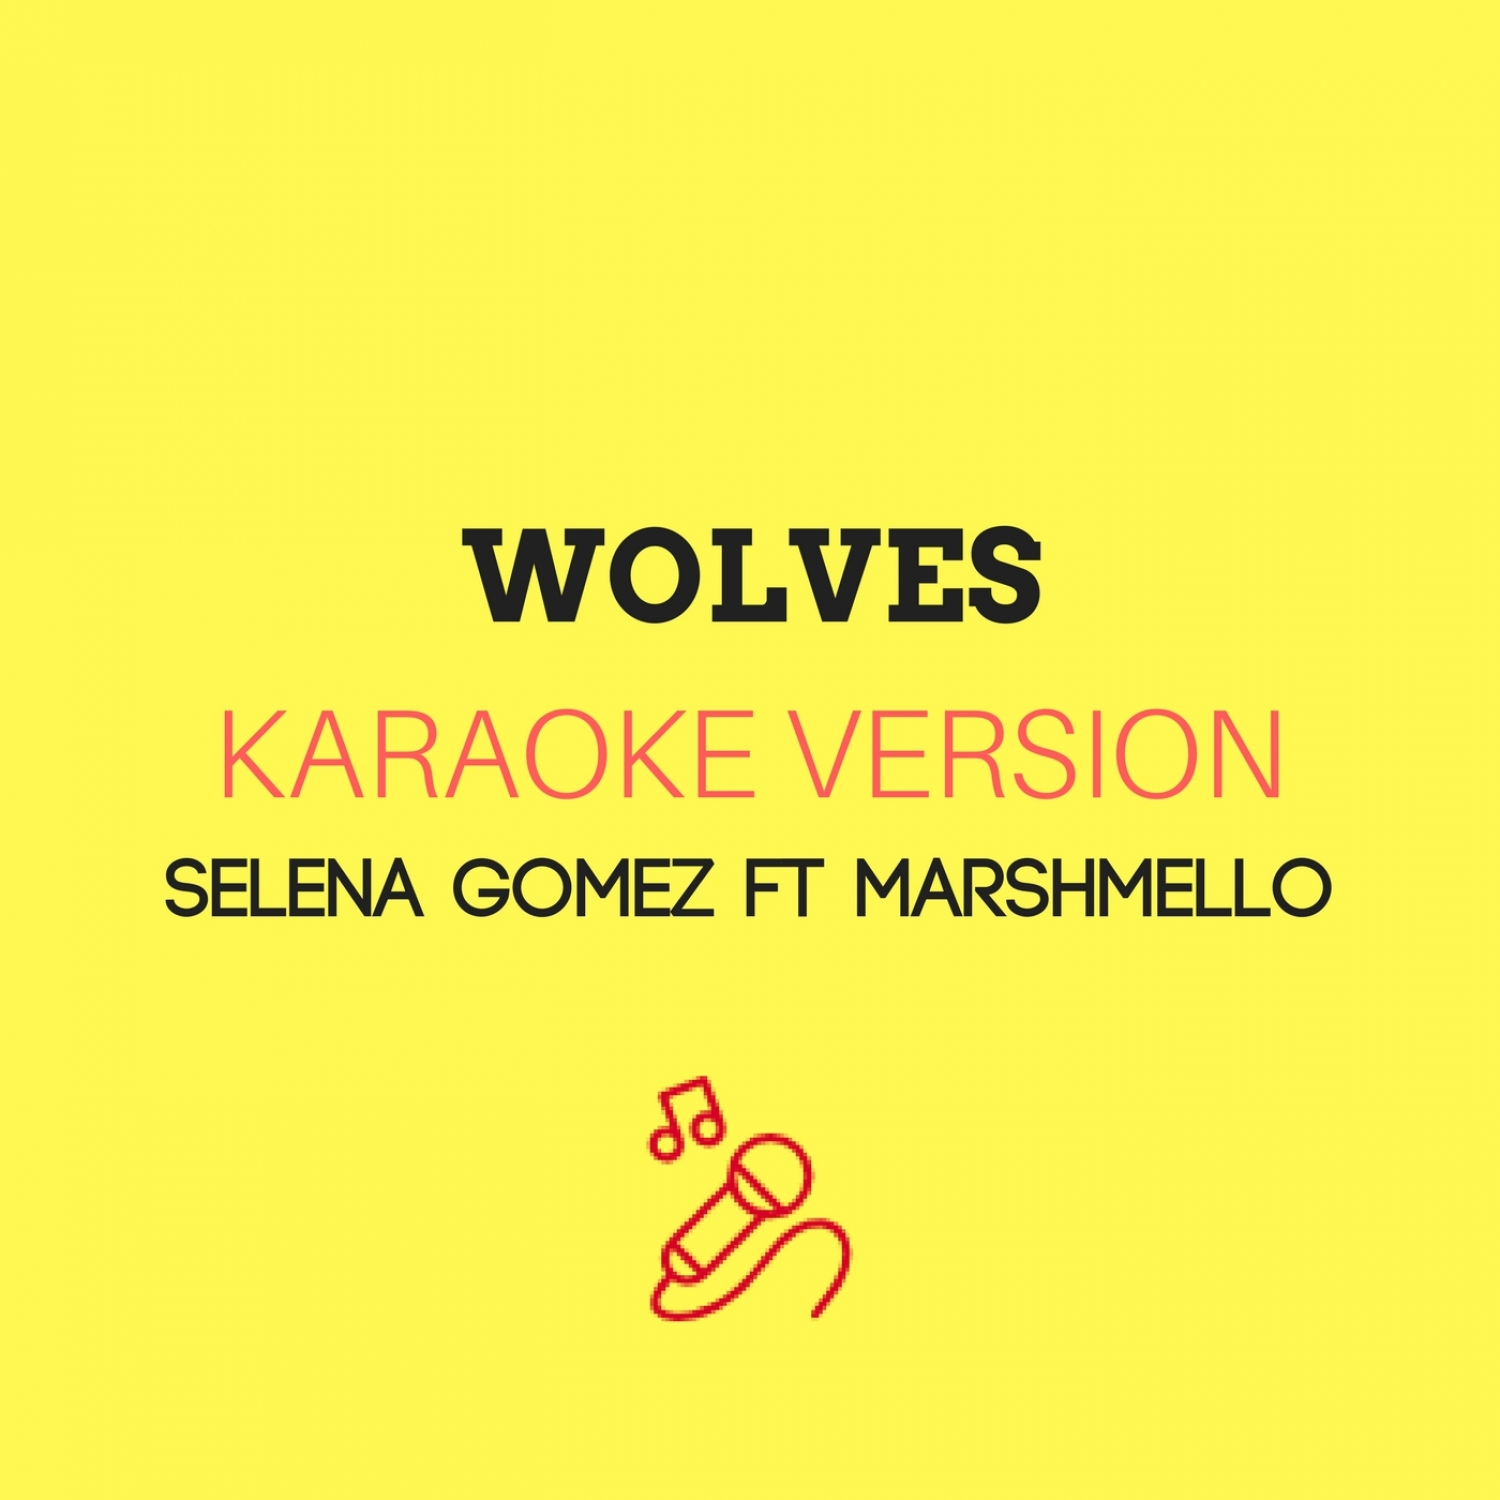 JMKaraoke - Wolves (Karaoke Version)